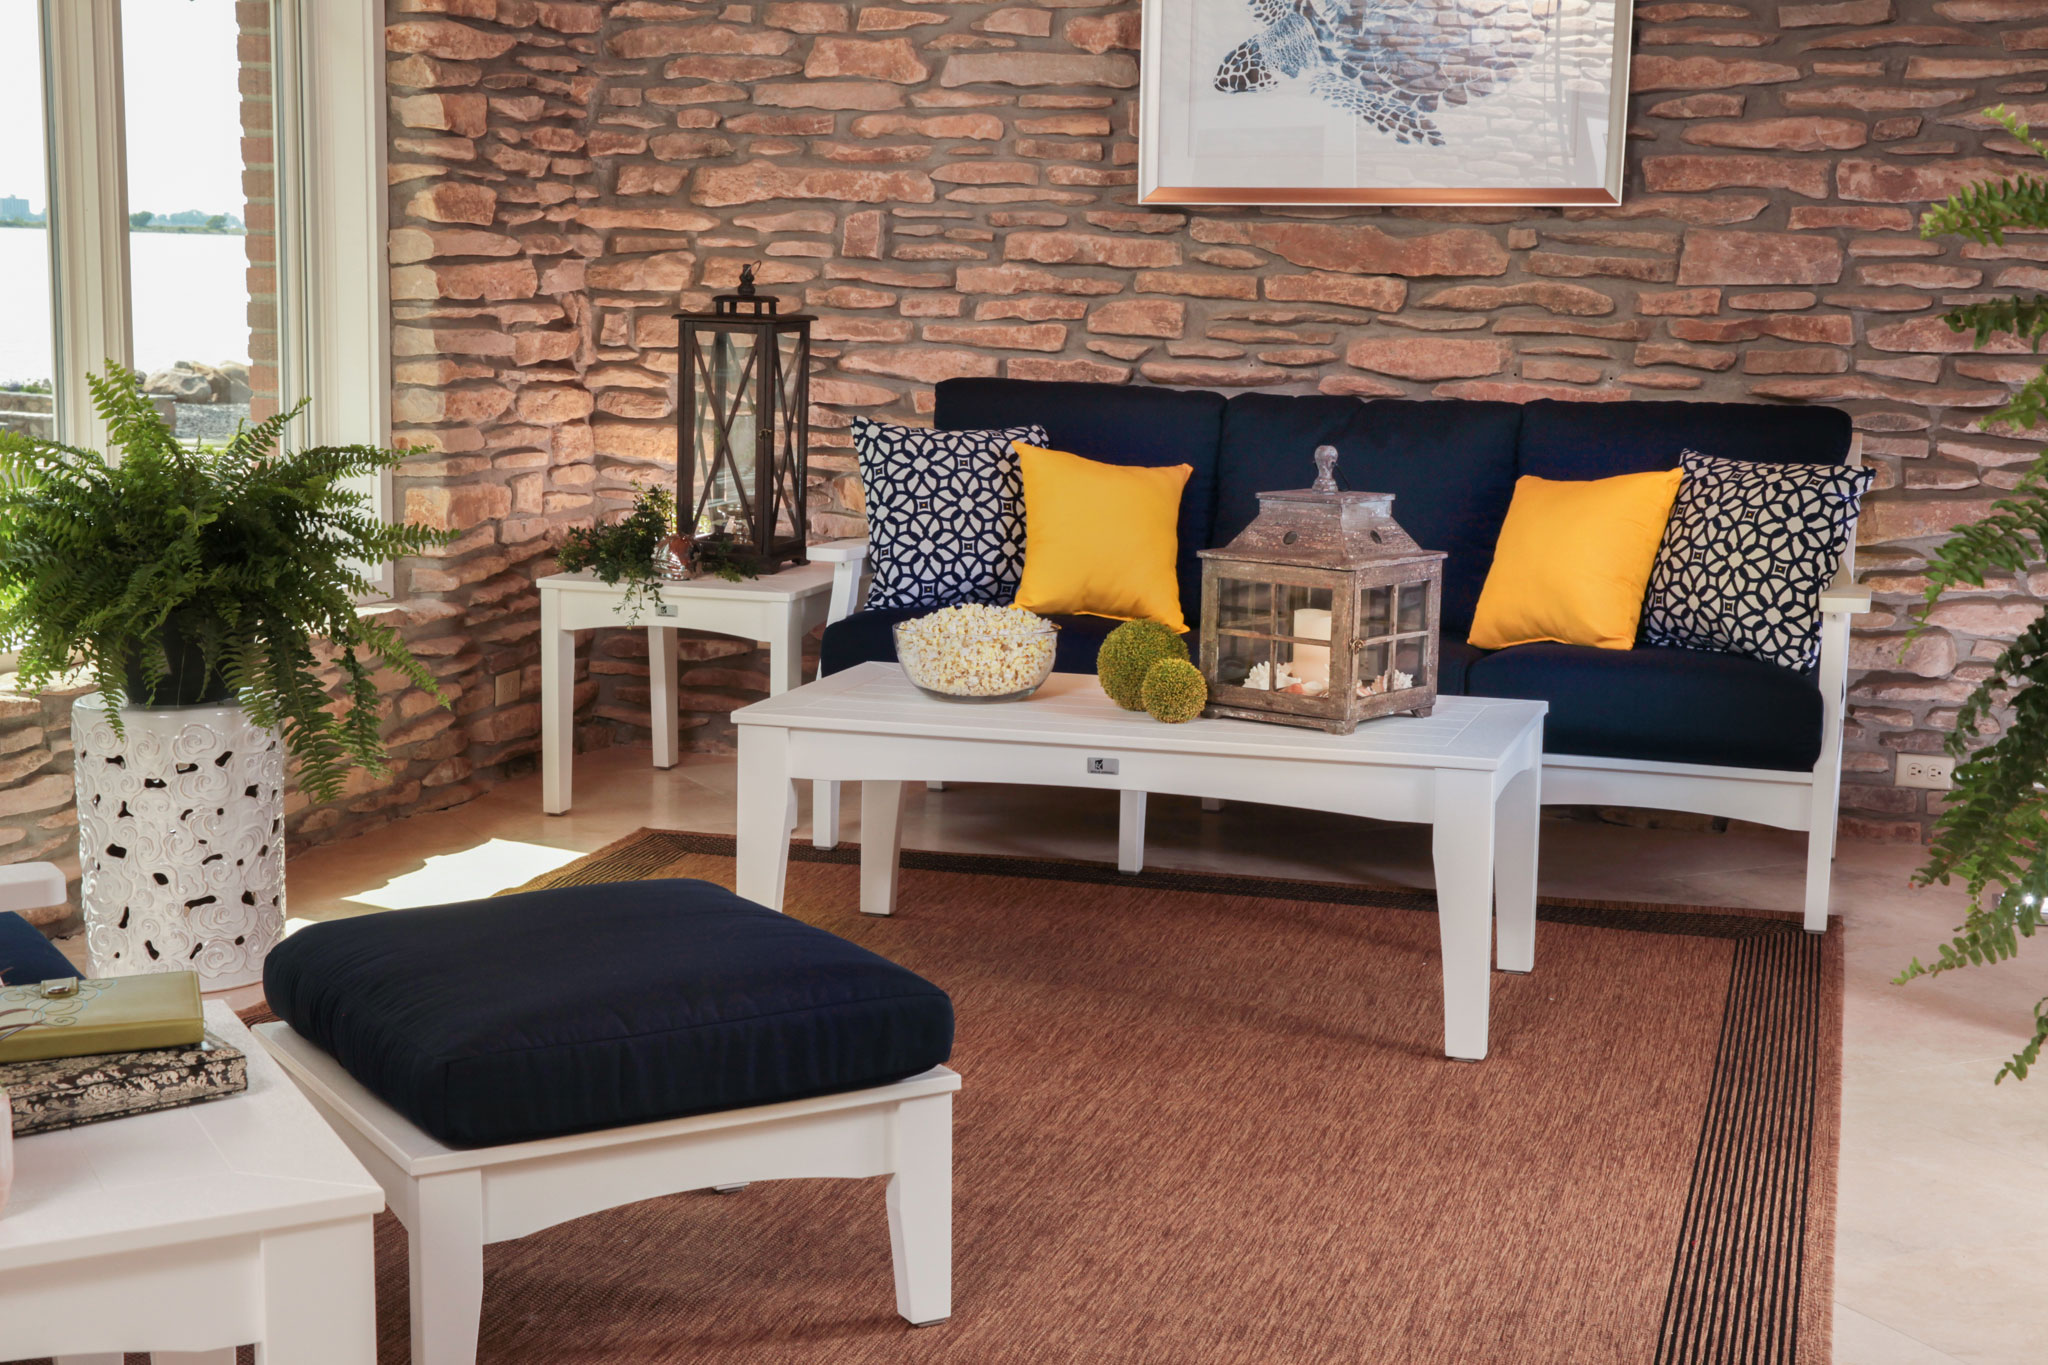 Outdoor Patio Furniture For Sale Kansas